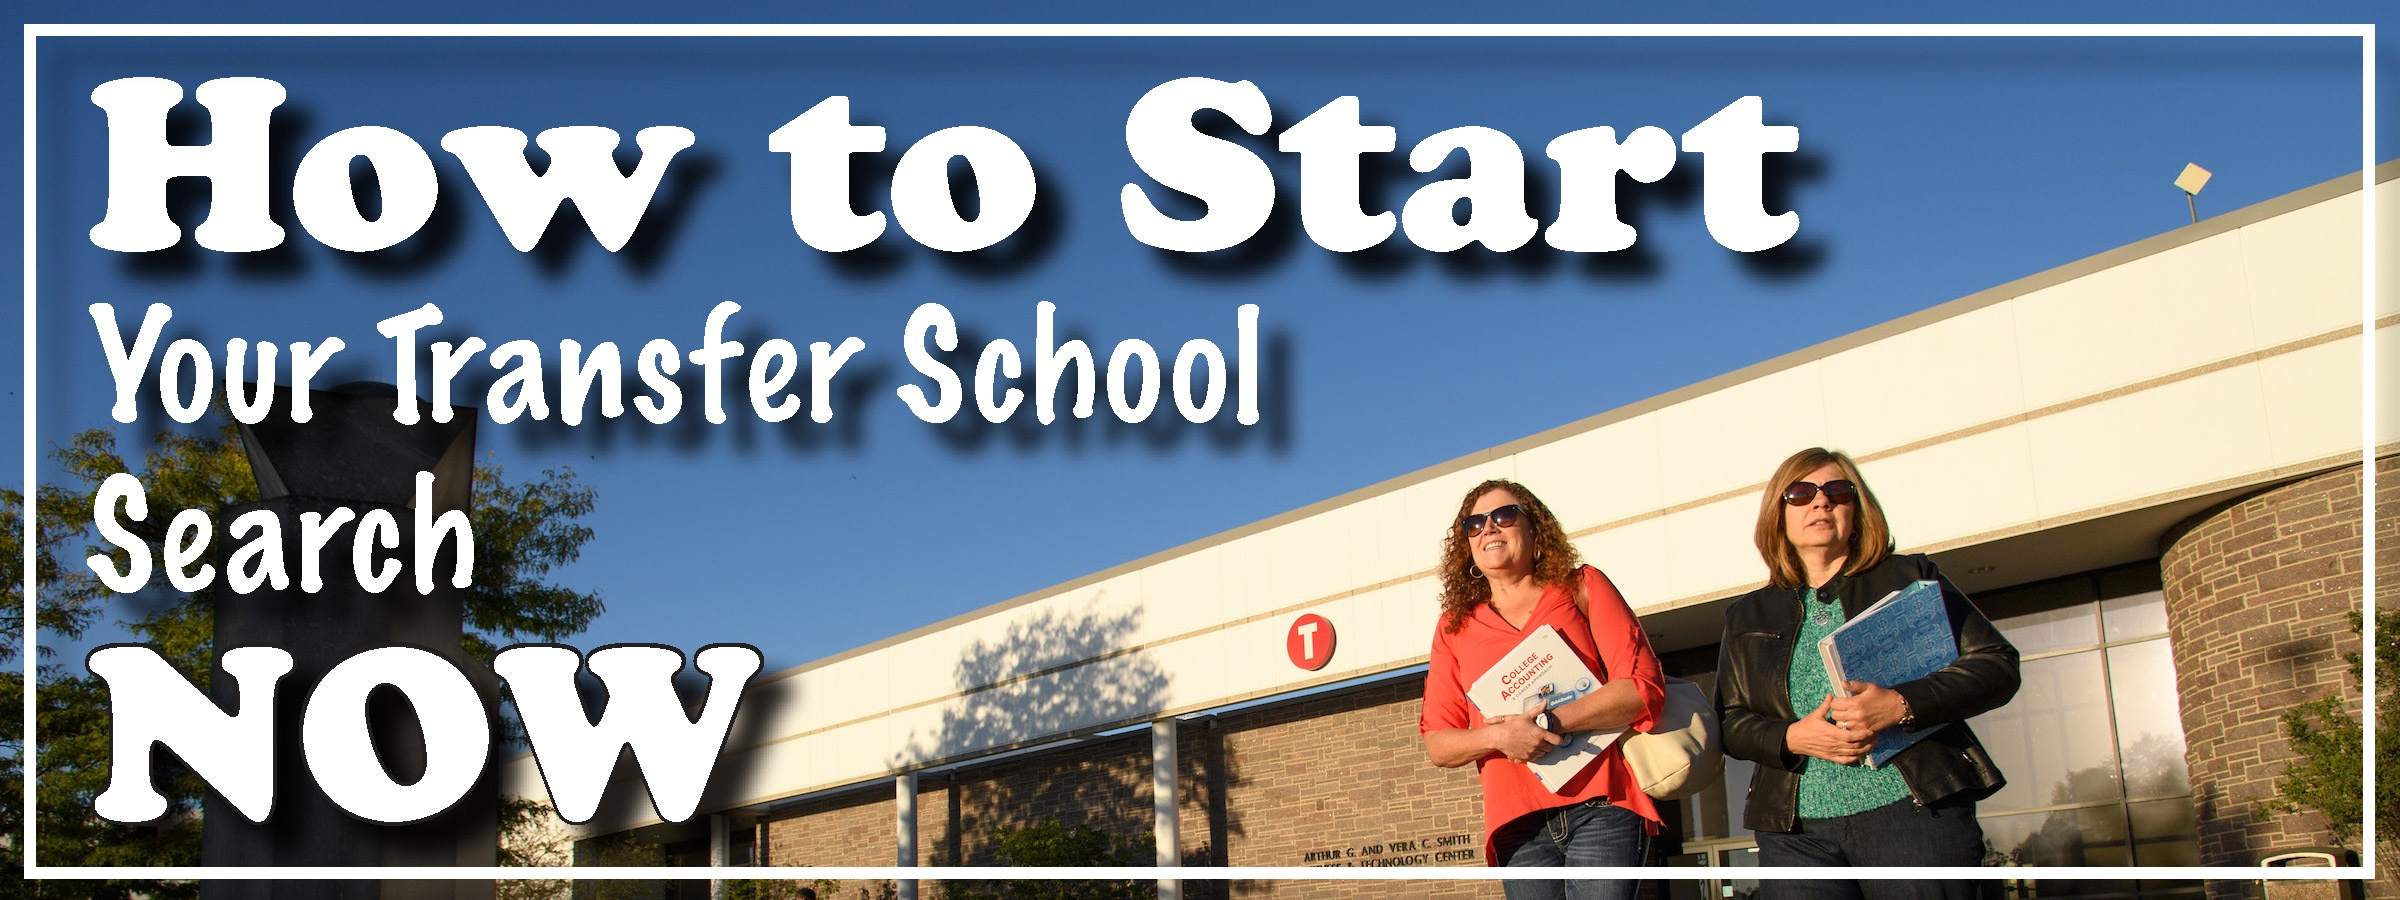 how to start your transfer school search now jjc joliet junior college